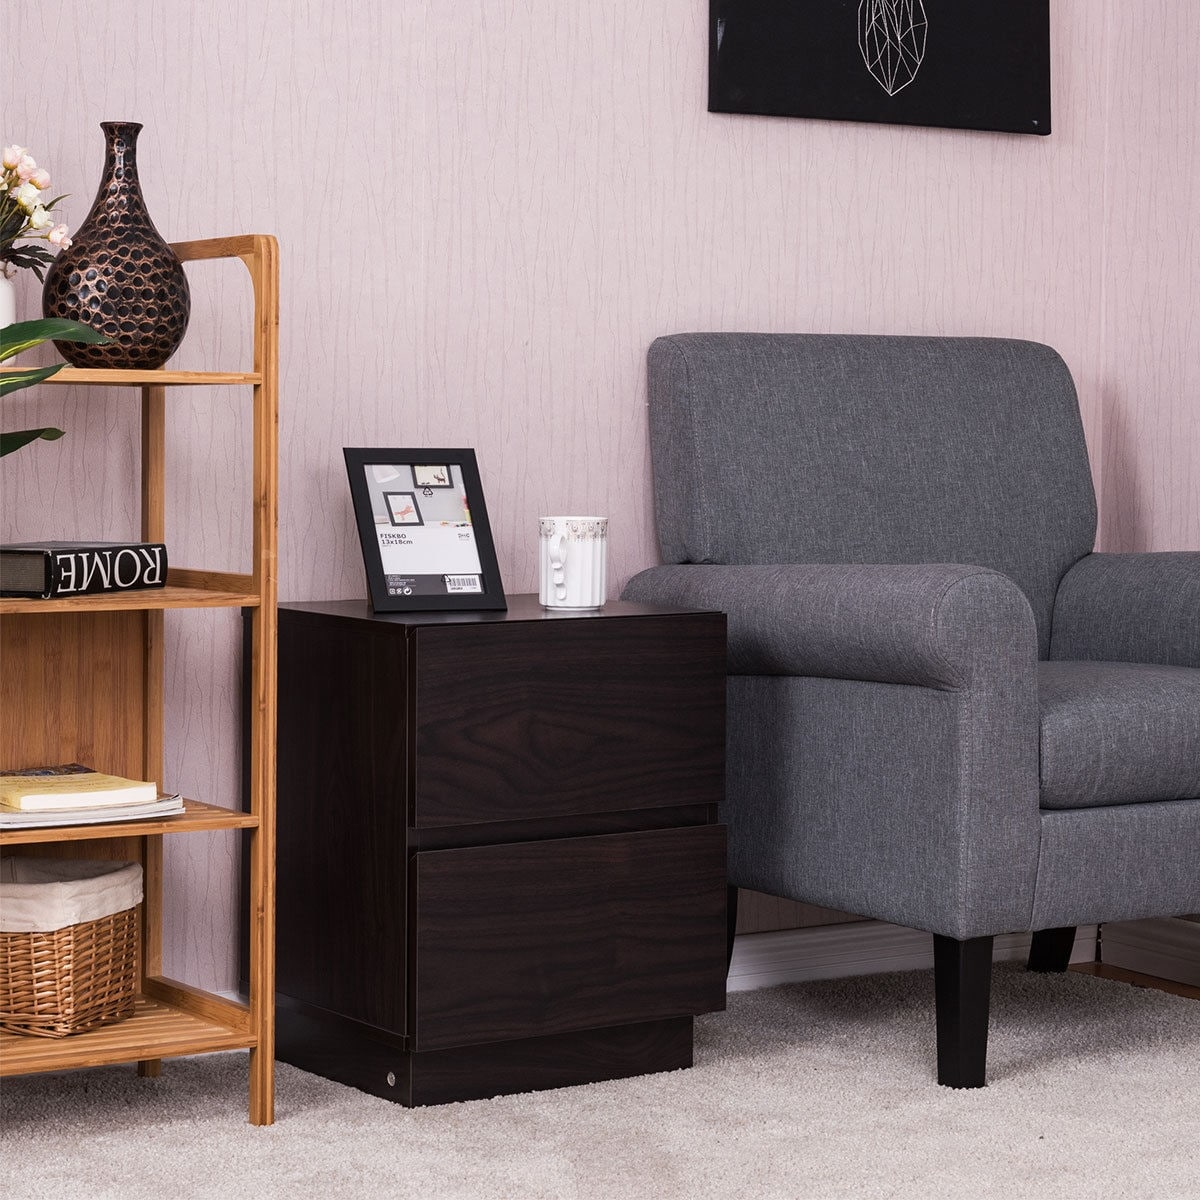 Costway 2 Drawers End Table Night Stand Chest Cabinet NightStands ...